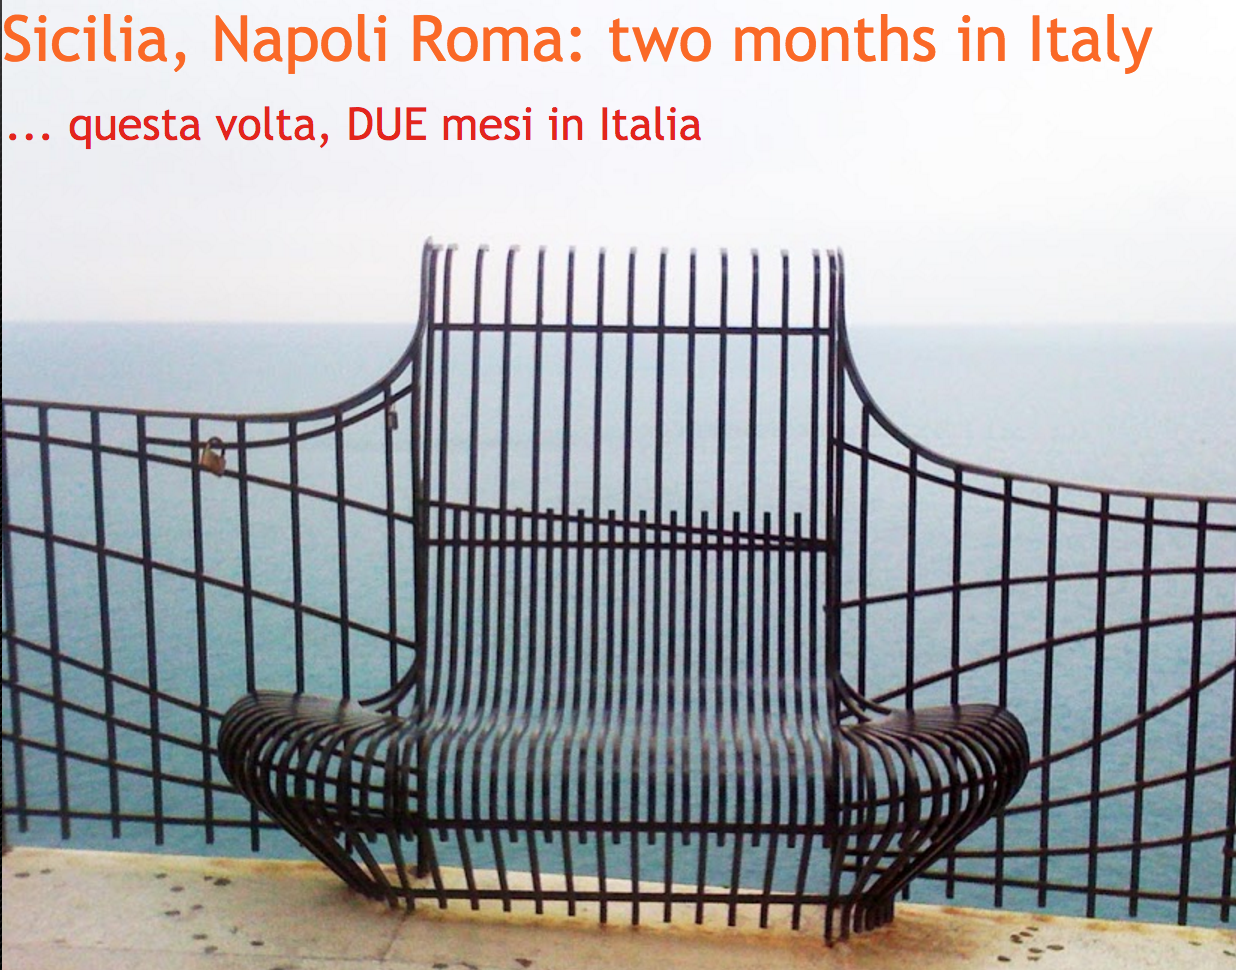 and the following year, two months in Italy